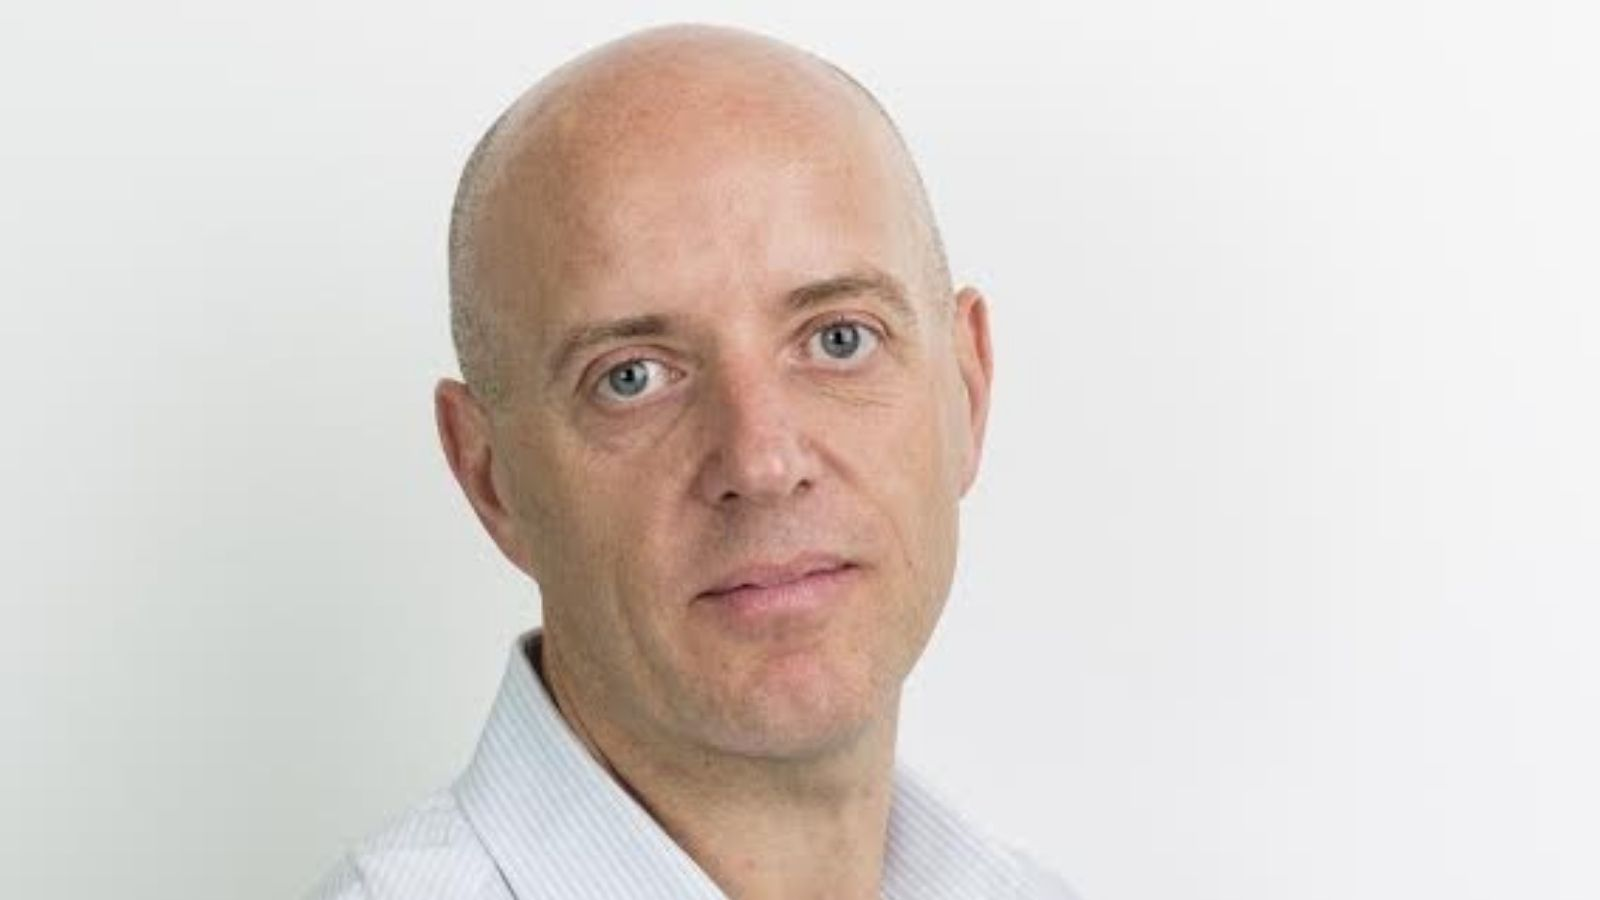 Pinterest Hires The Guardian's Nick Hewat to Lead its U.K. and Ireland Commercial Operations